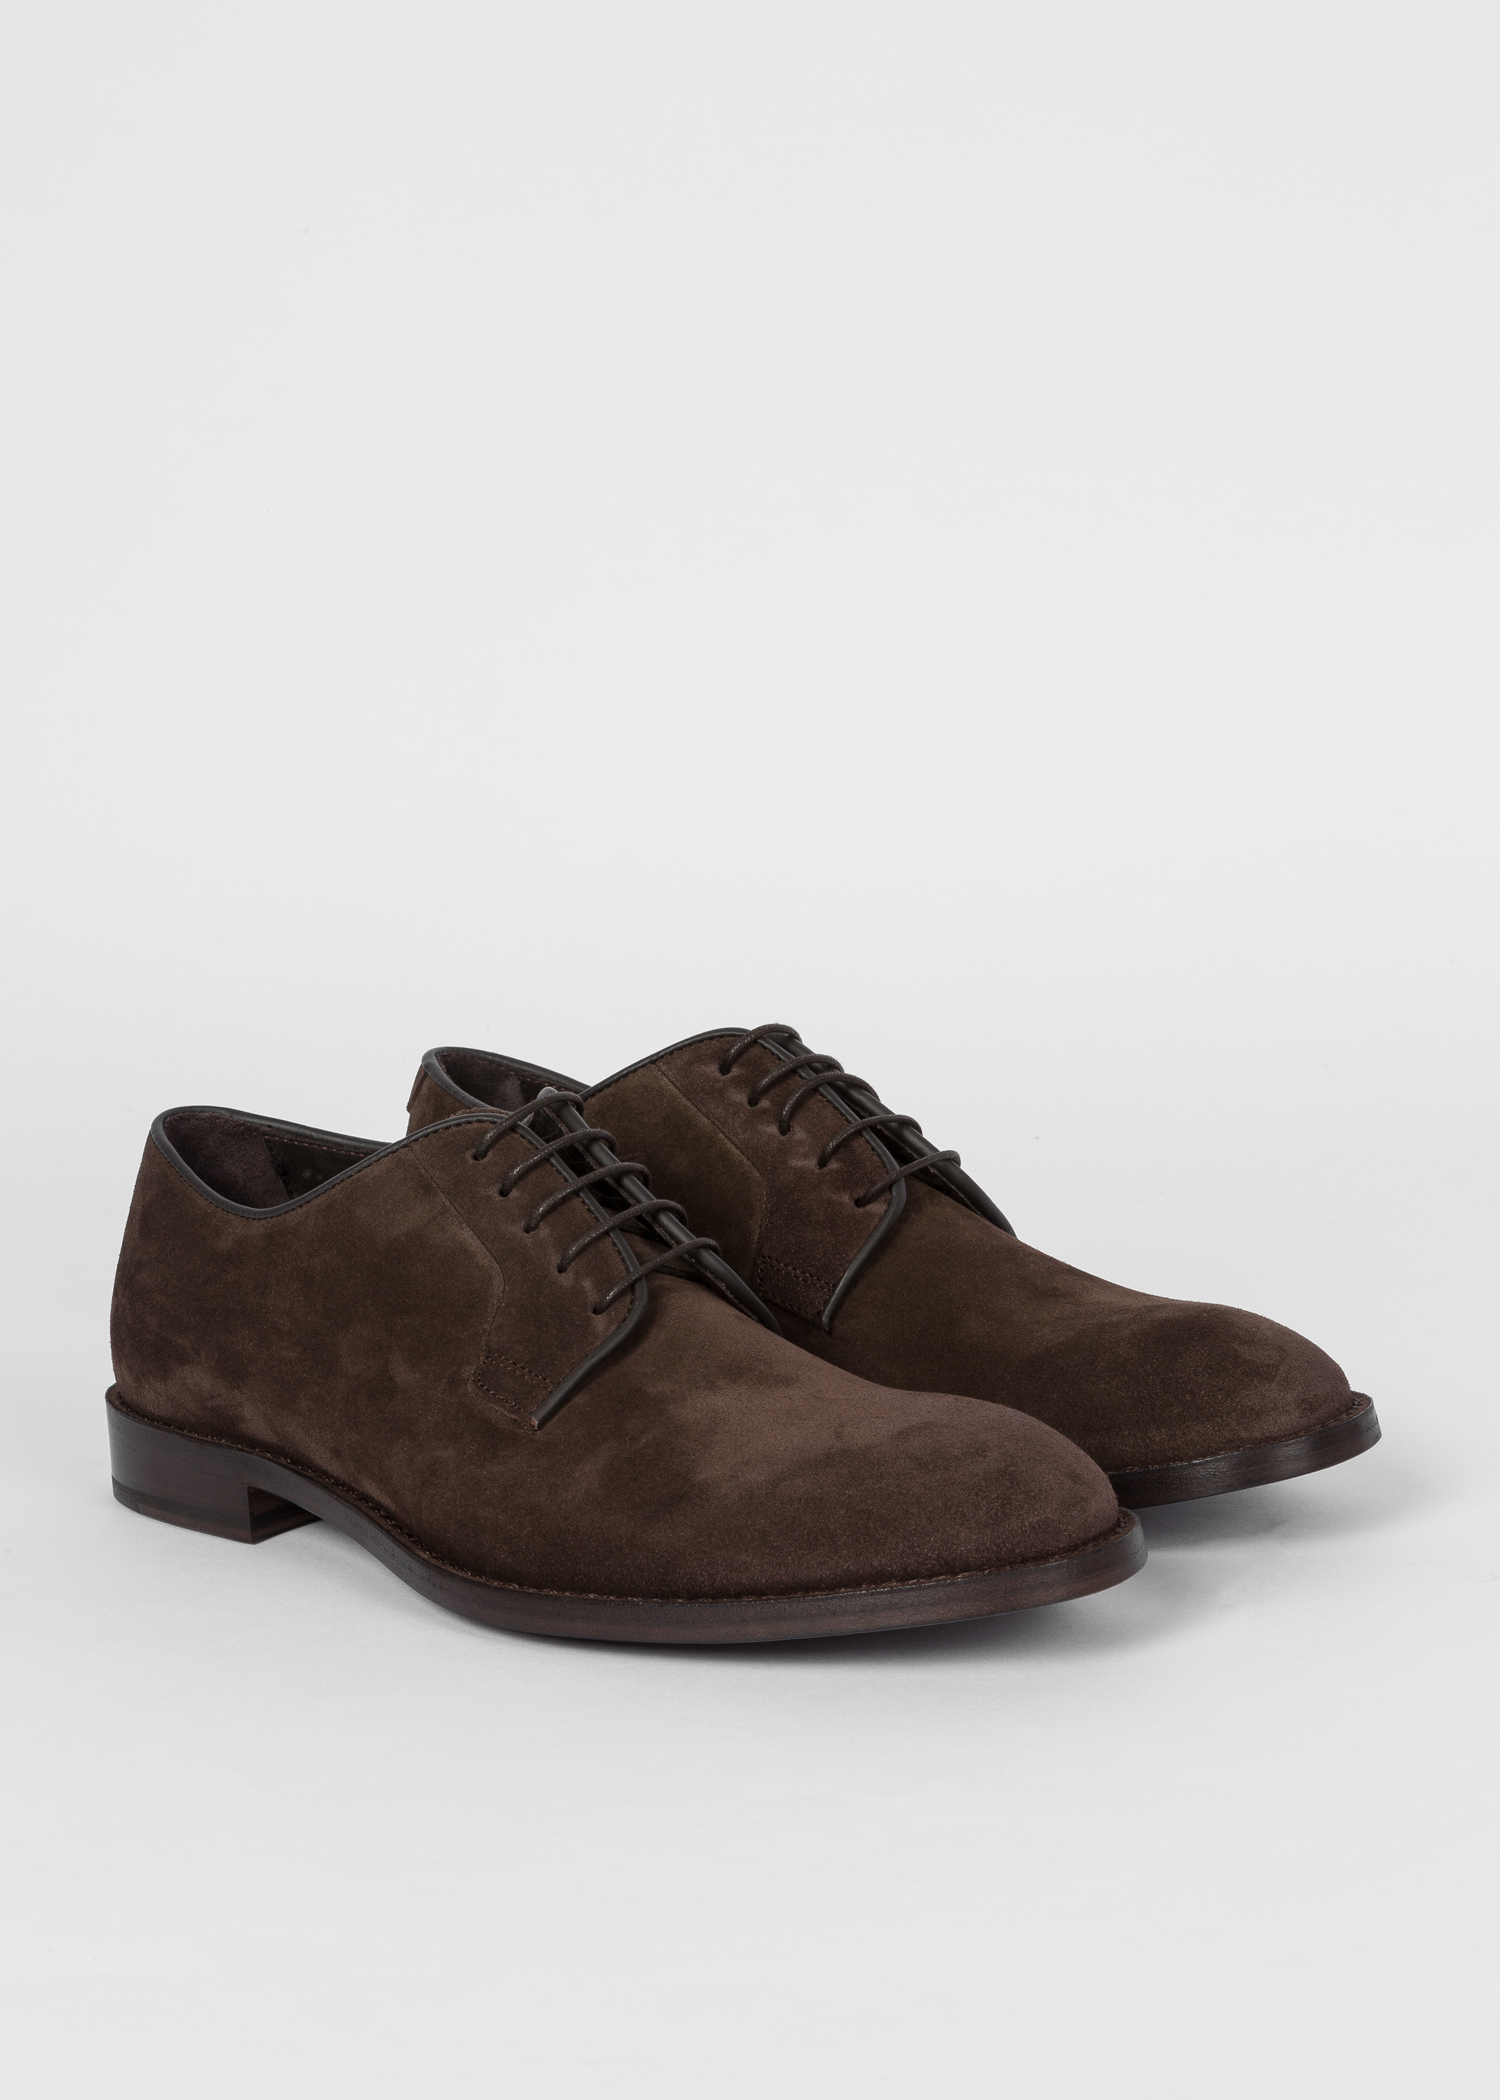 be8f42bd8be07 Men's Dark Brown Suede 'Chester' Flexible Travel Shoes